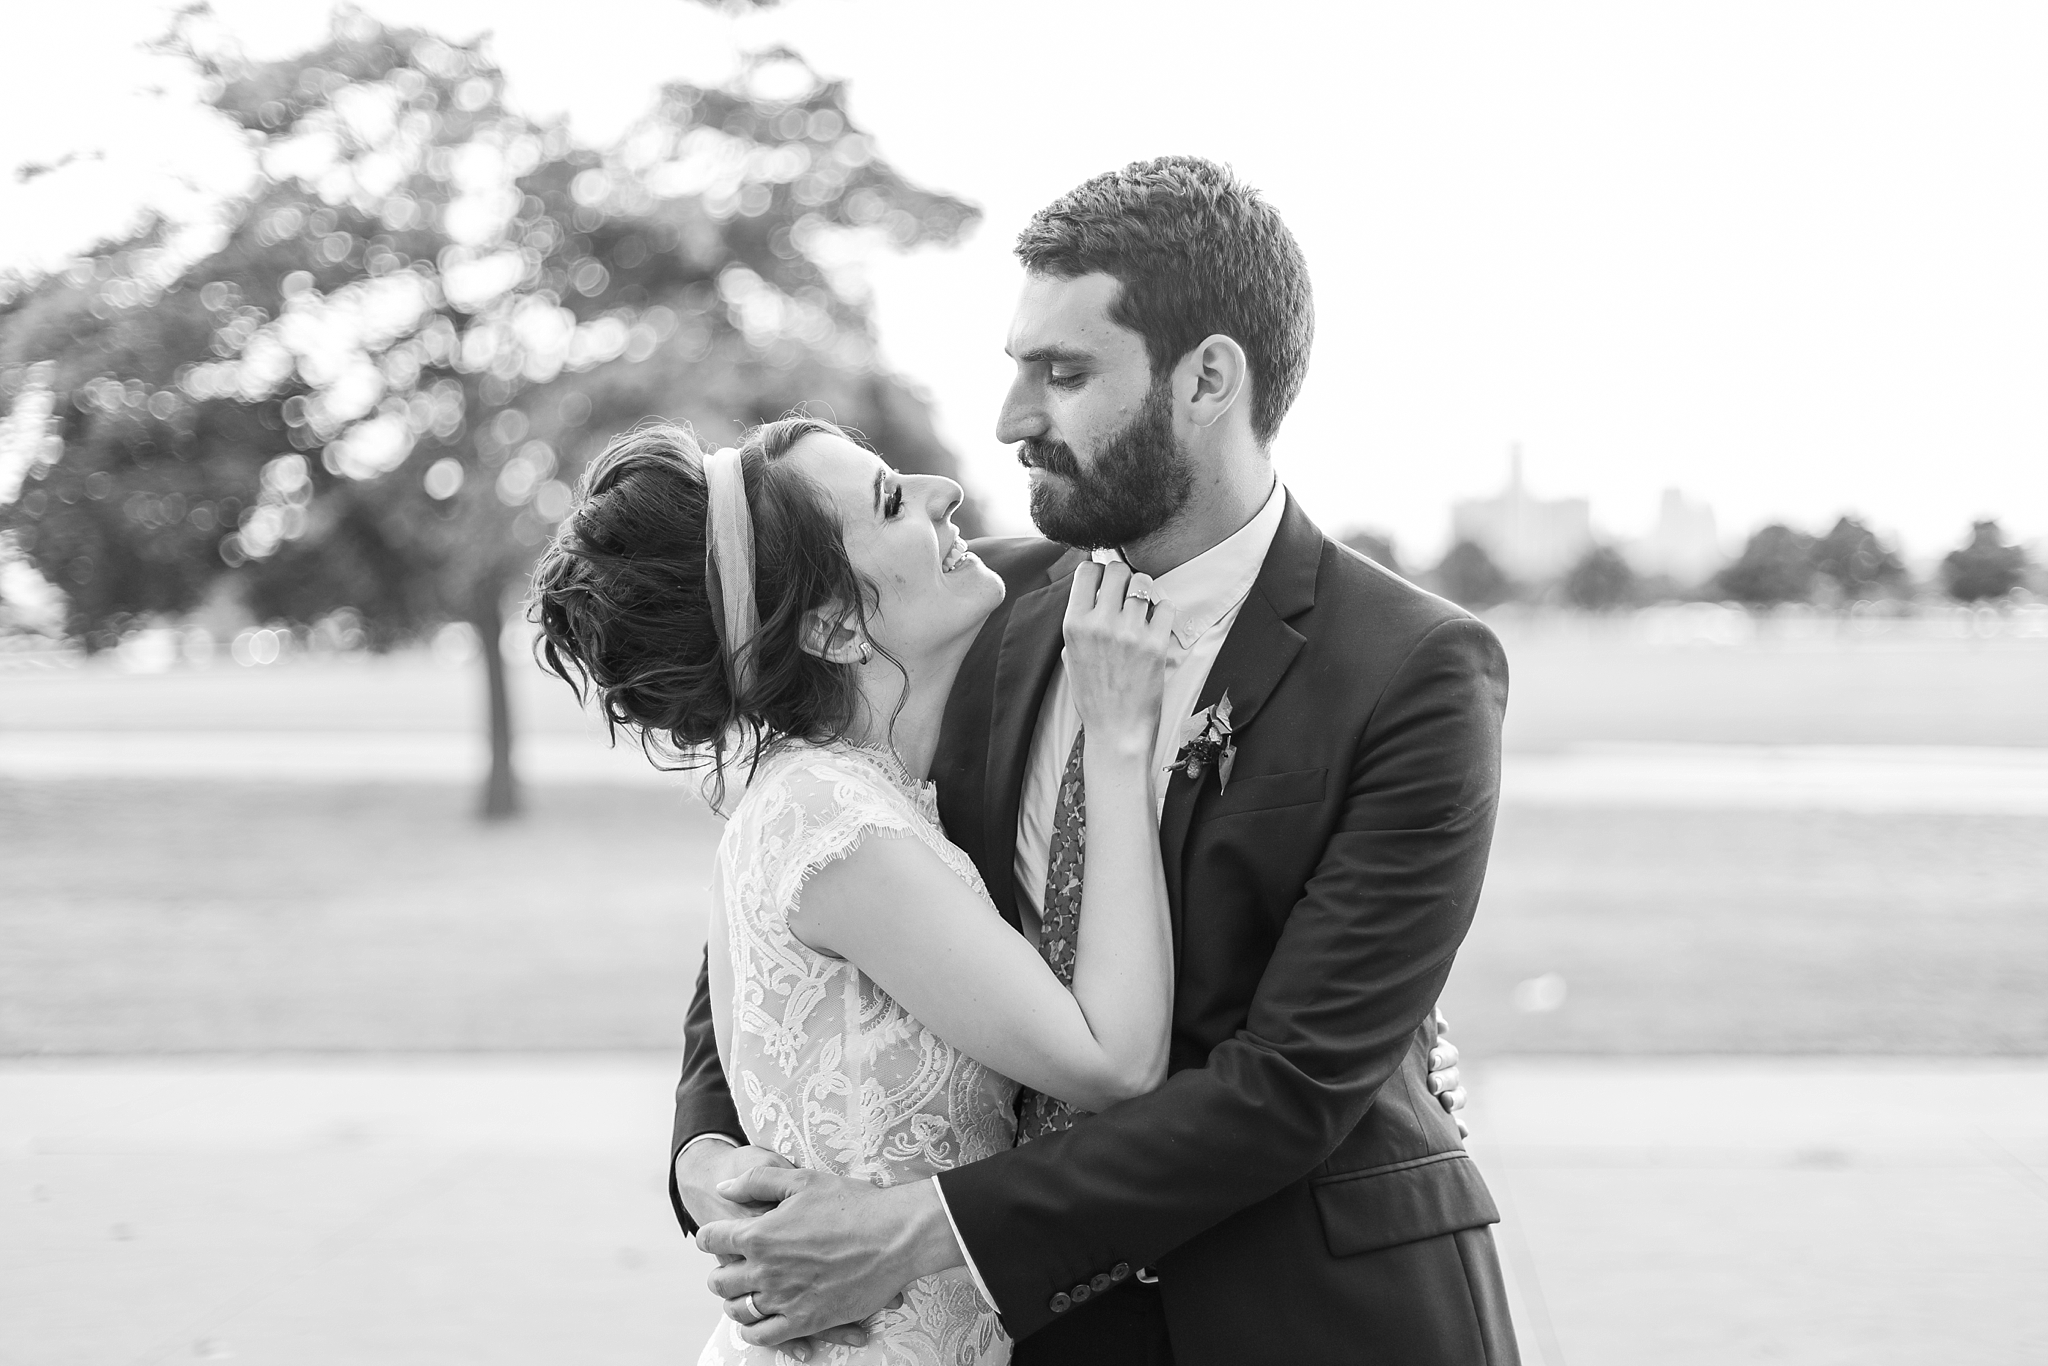 alternative-joyful-wedding-photos-at-the-belle-isle-casino-in-detroit-michigan-by-courtney-carolyn-photography_0059.jpg